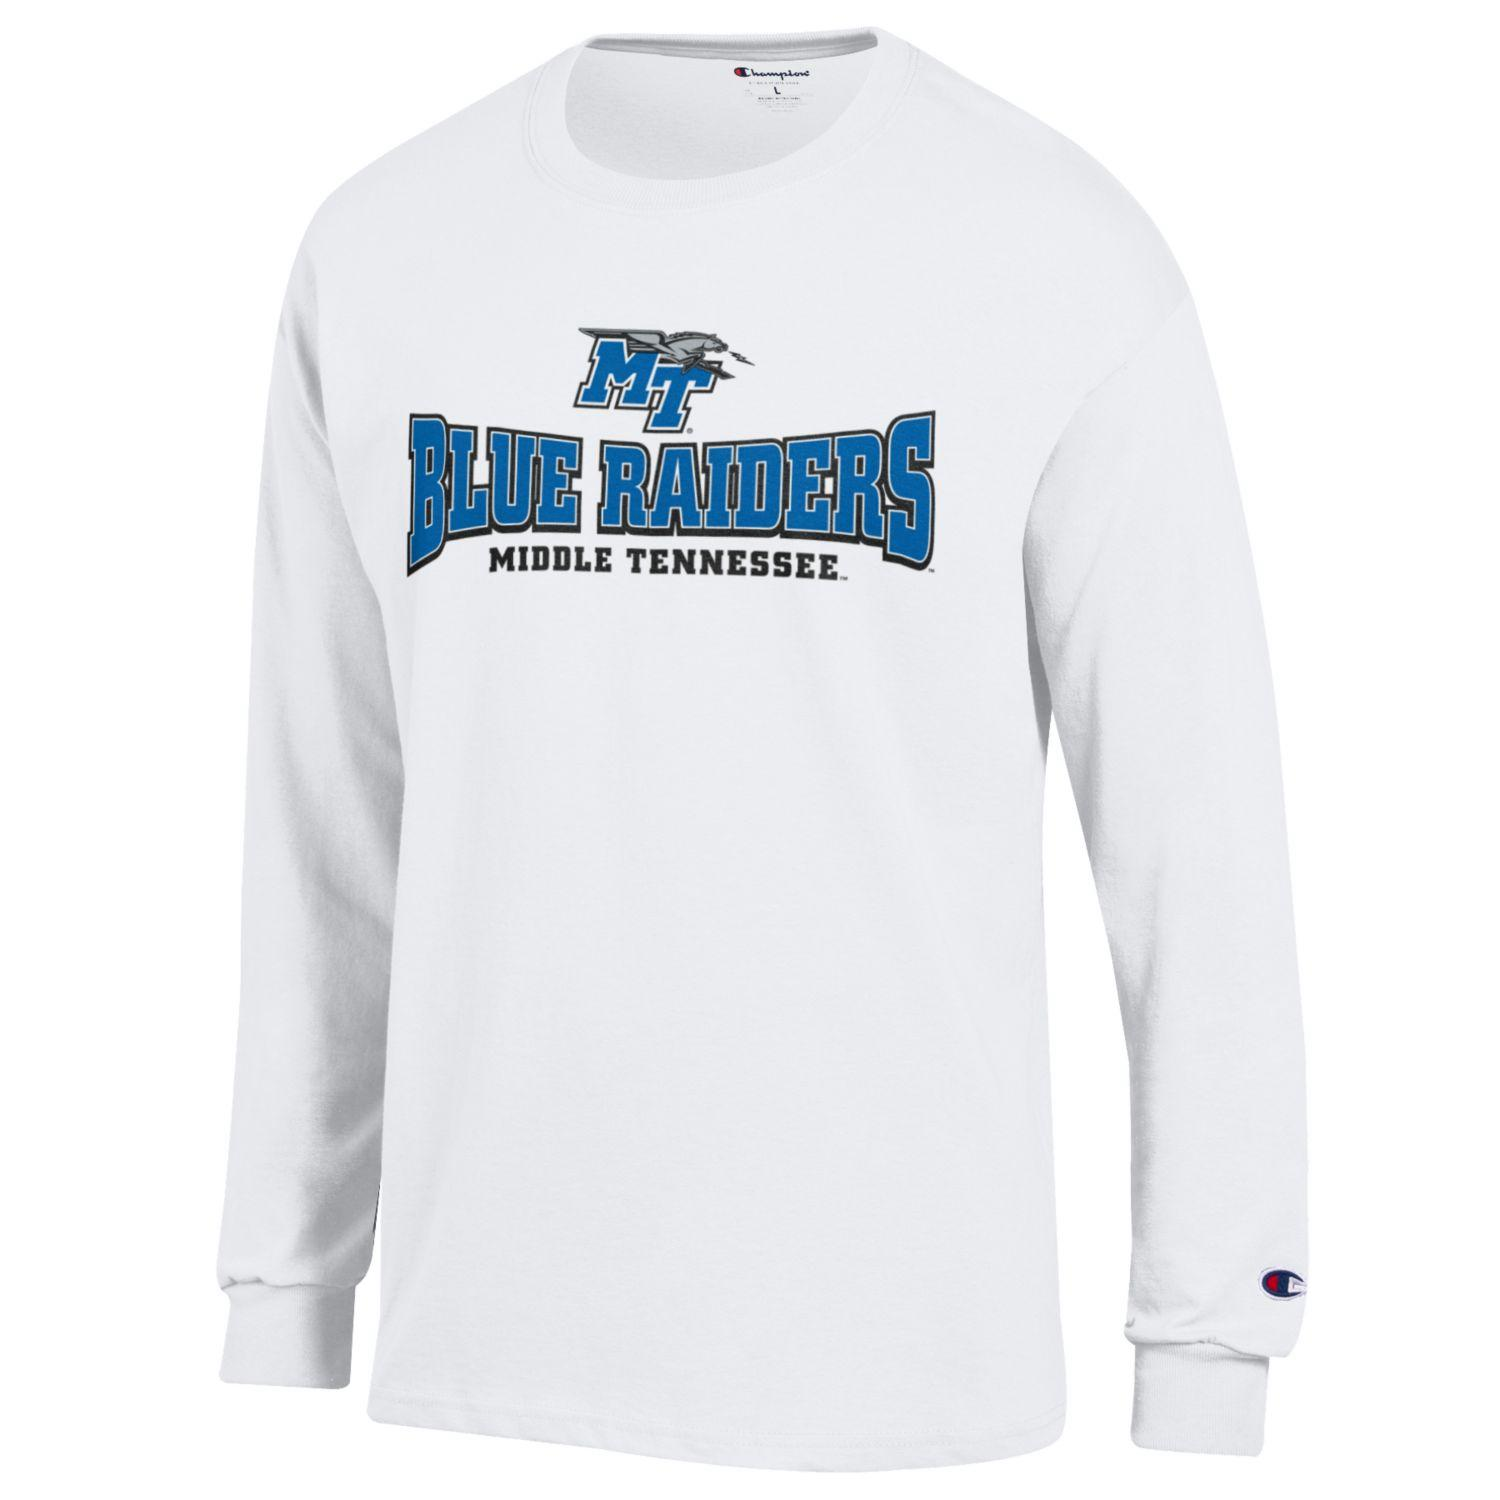 Blue Raiders Middle Tennessee Long Sleeve Shirt